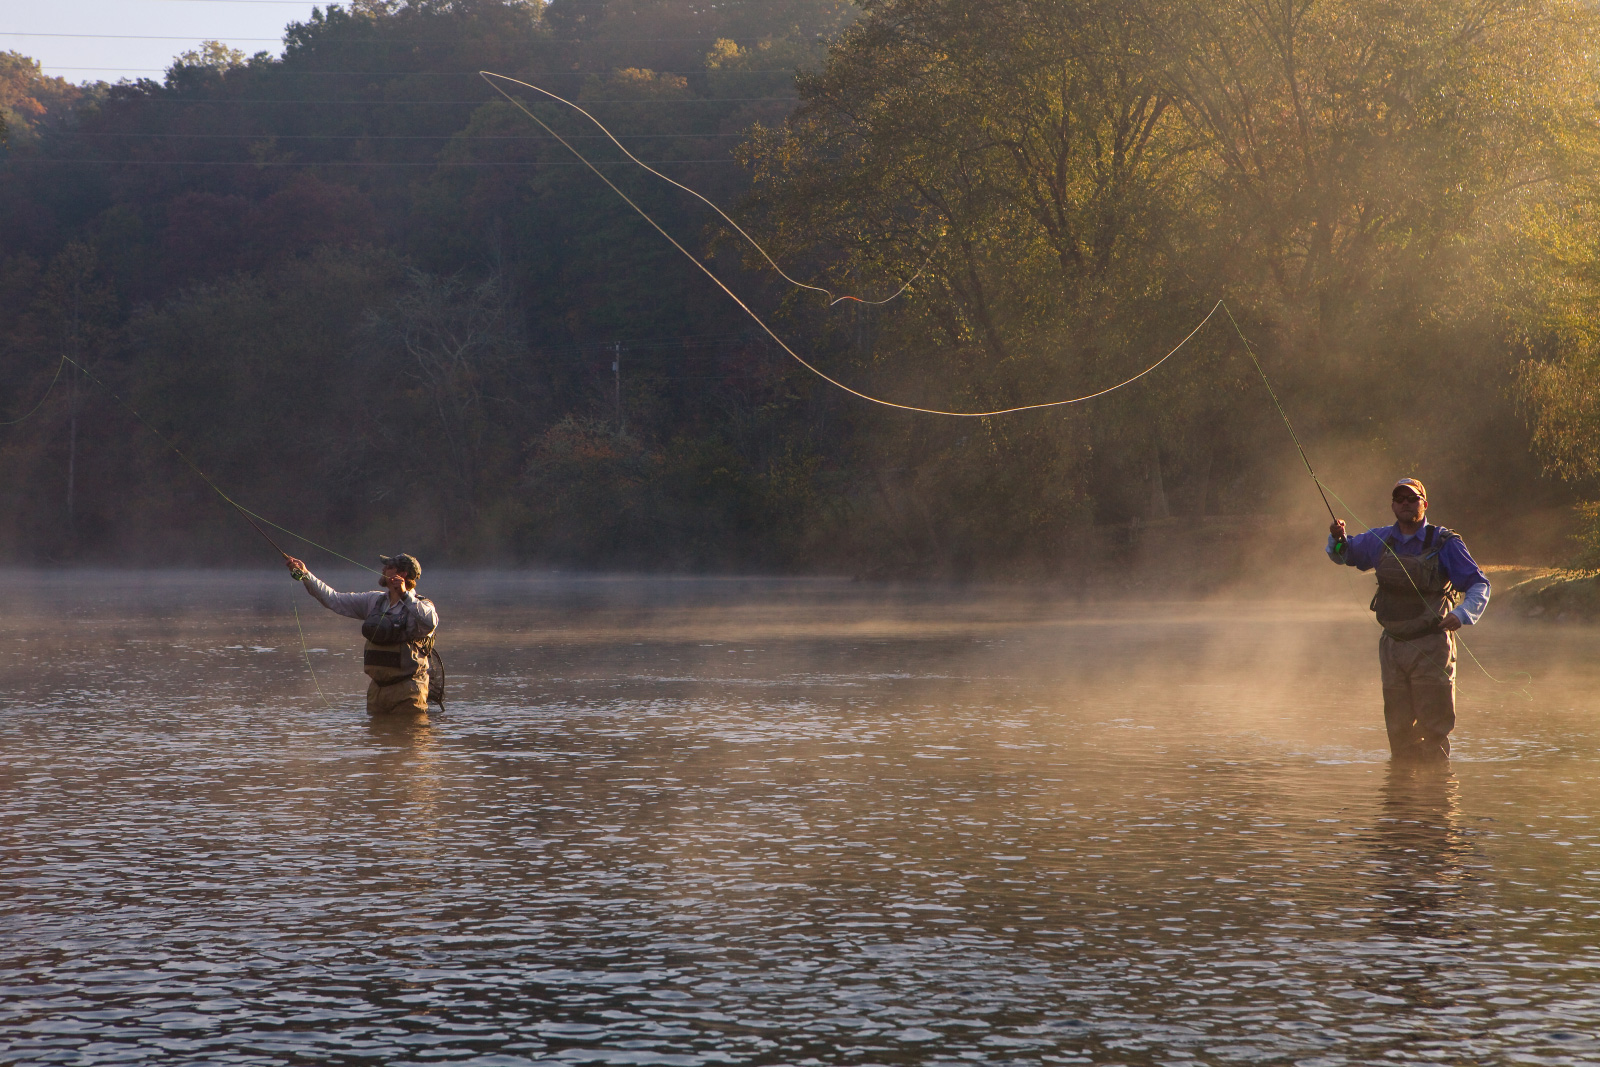 Fly-fishing on the Toccoa River